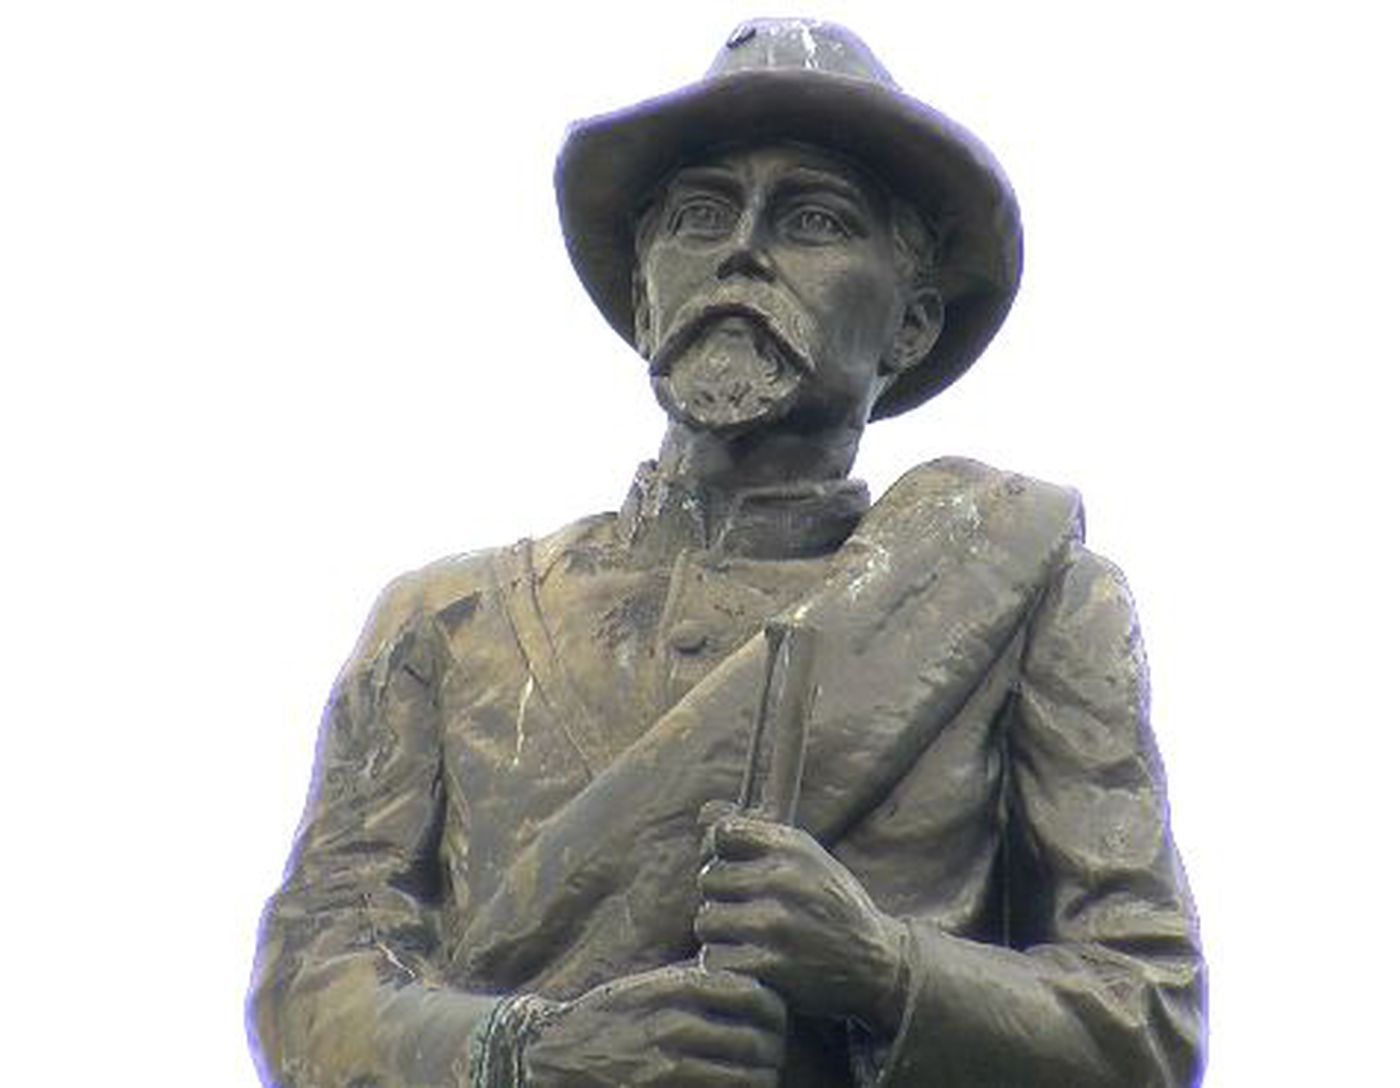 Confederate monuments in Gulfport called into question during meeting of Harrison County Board of Supervisors